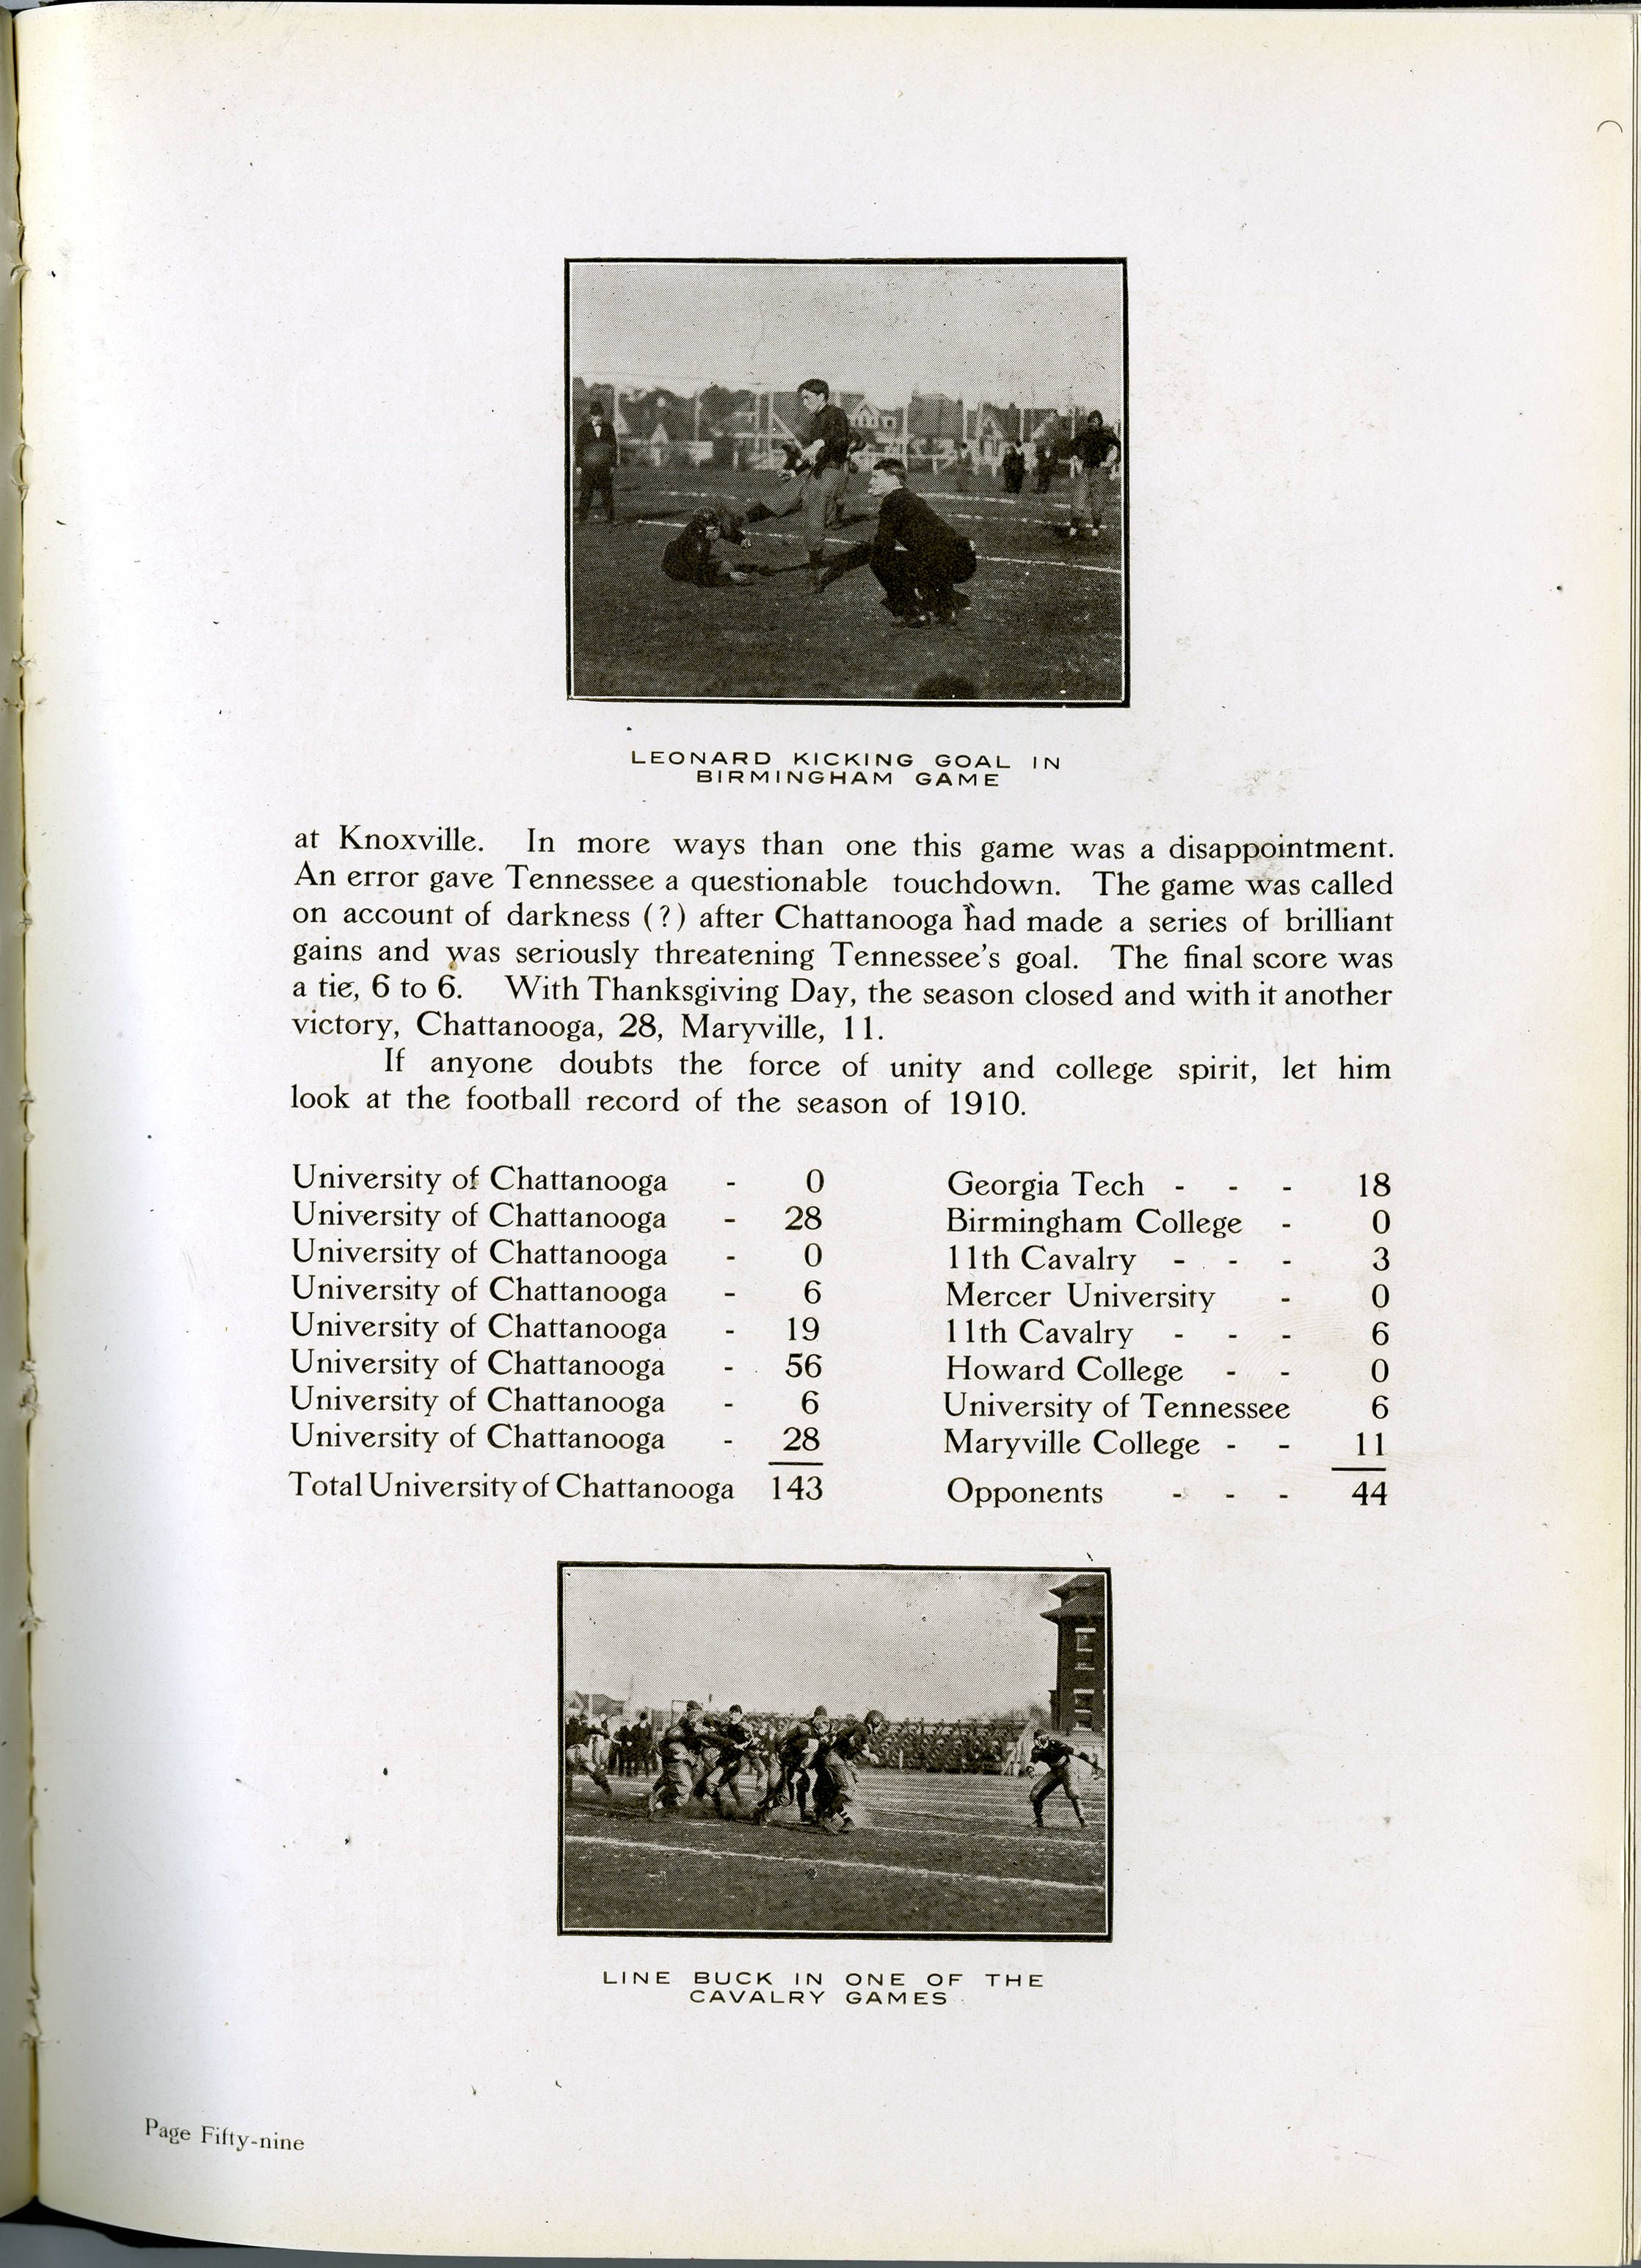 Pin By Utc Library On Moccasin Yearbooks Old Yearbooks Football